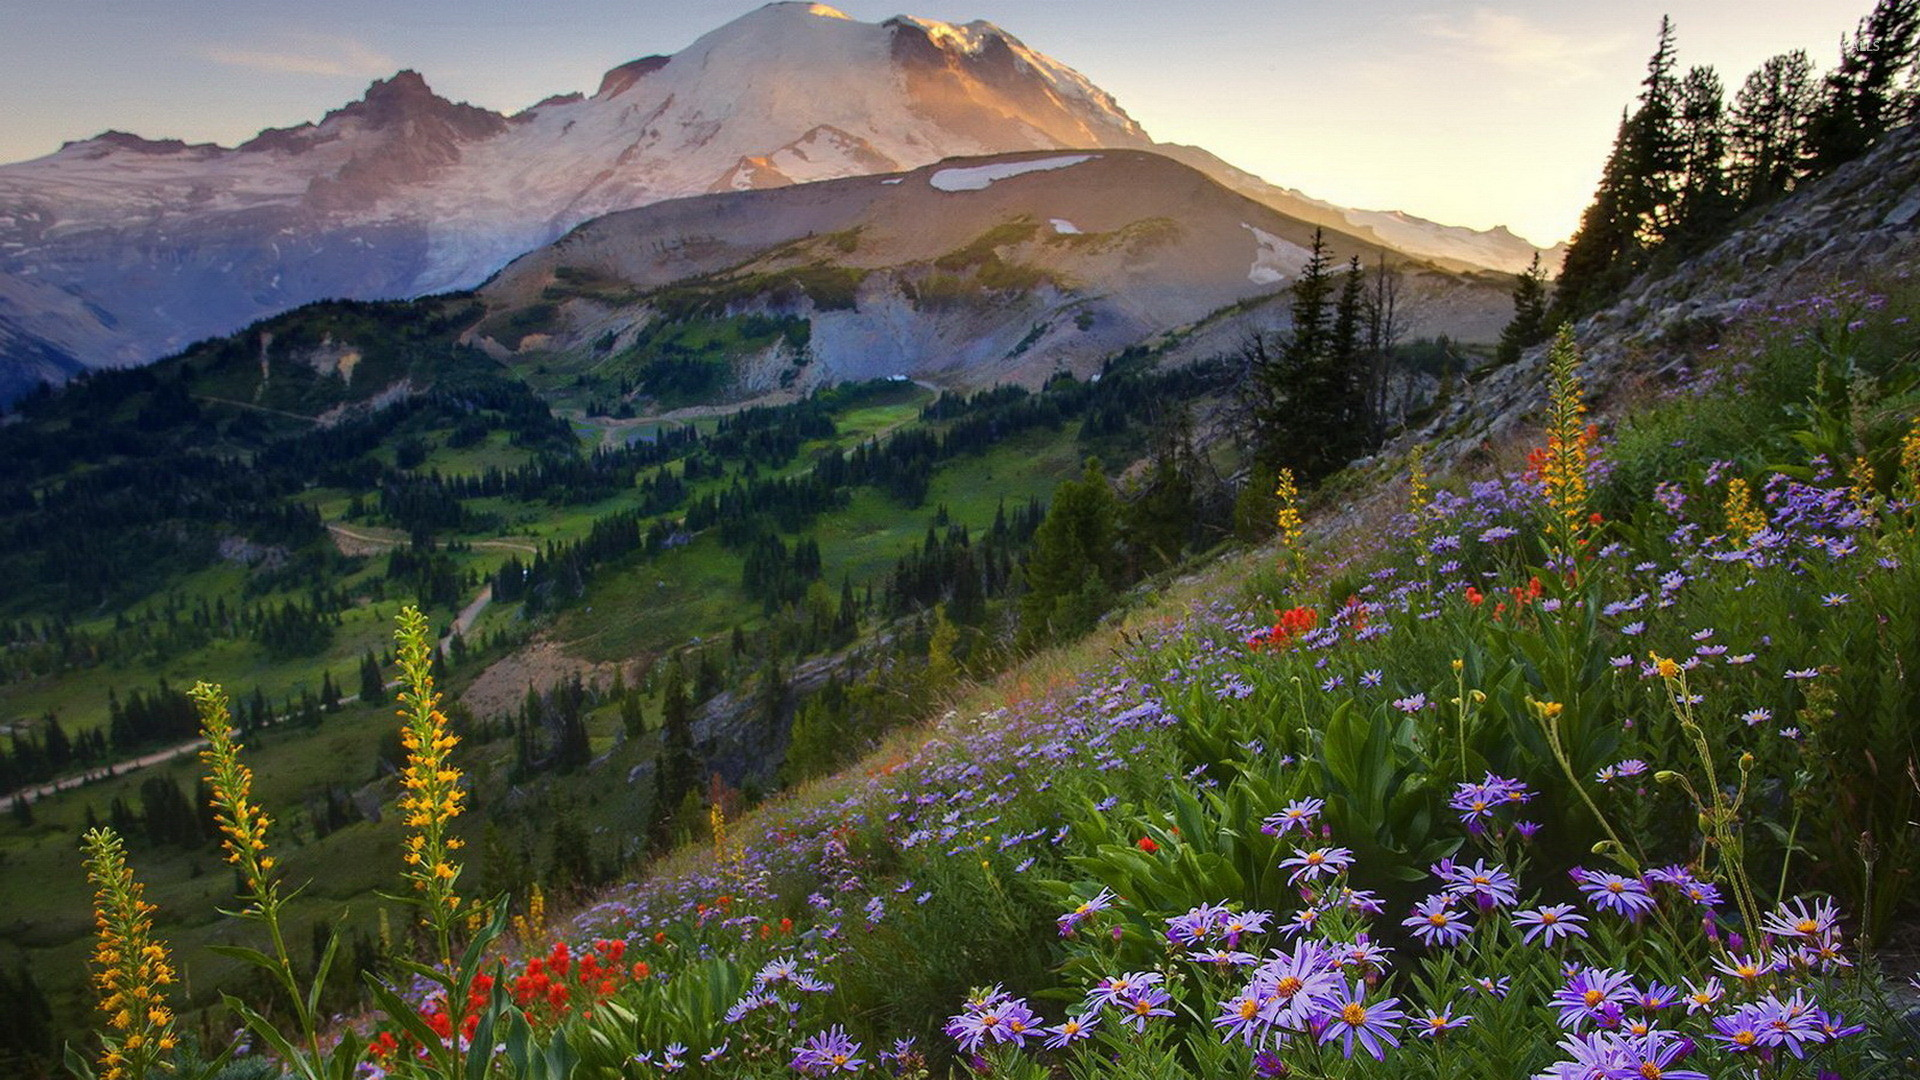 1920x1080 Mount Rainier National Park wallpaper